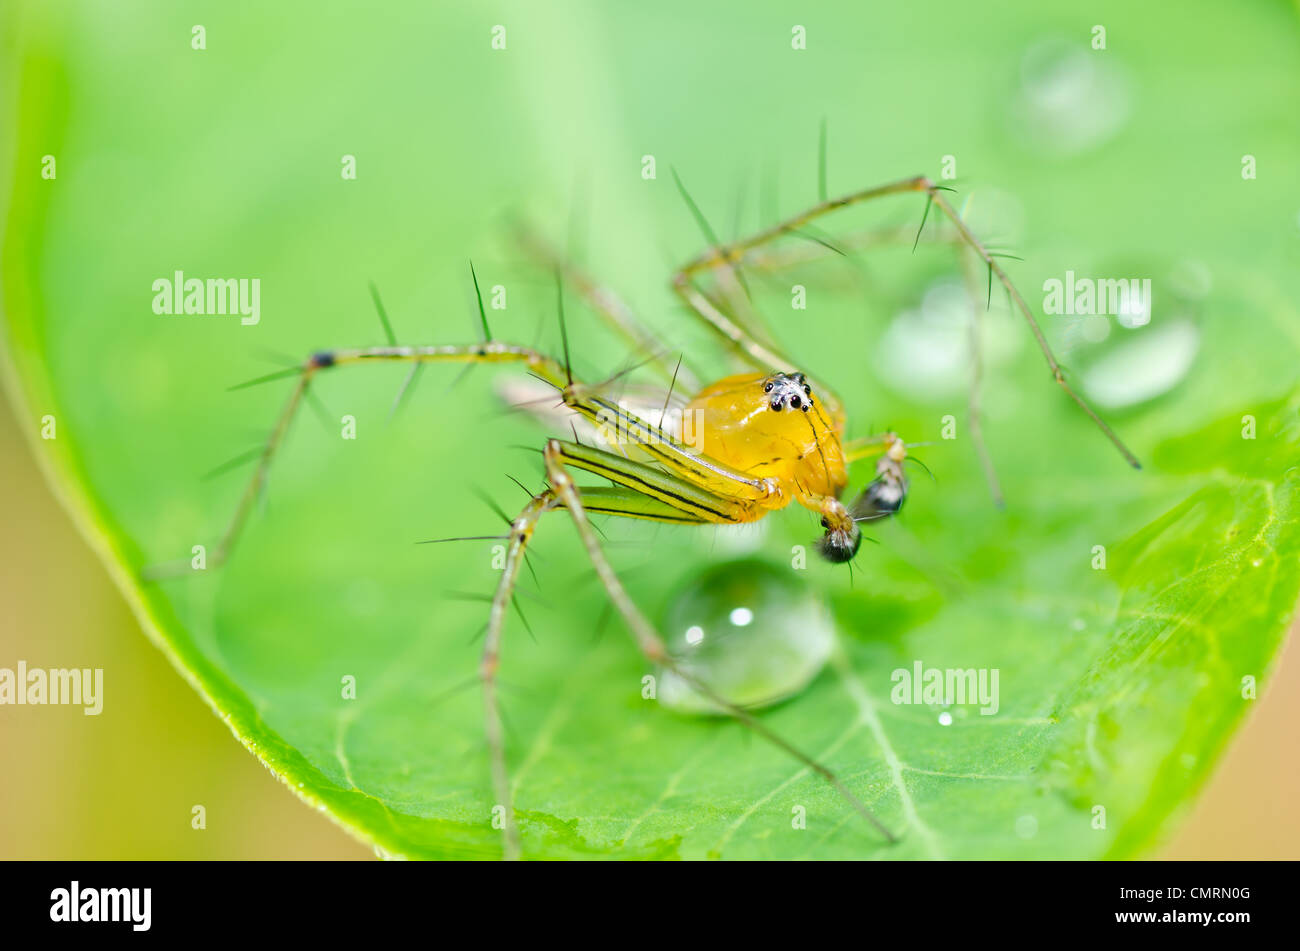 long legs spider and water drops in green nature or the garden - Stock Image